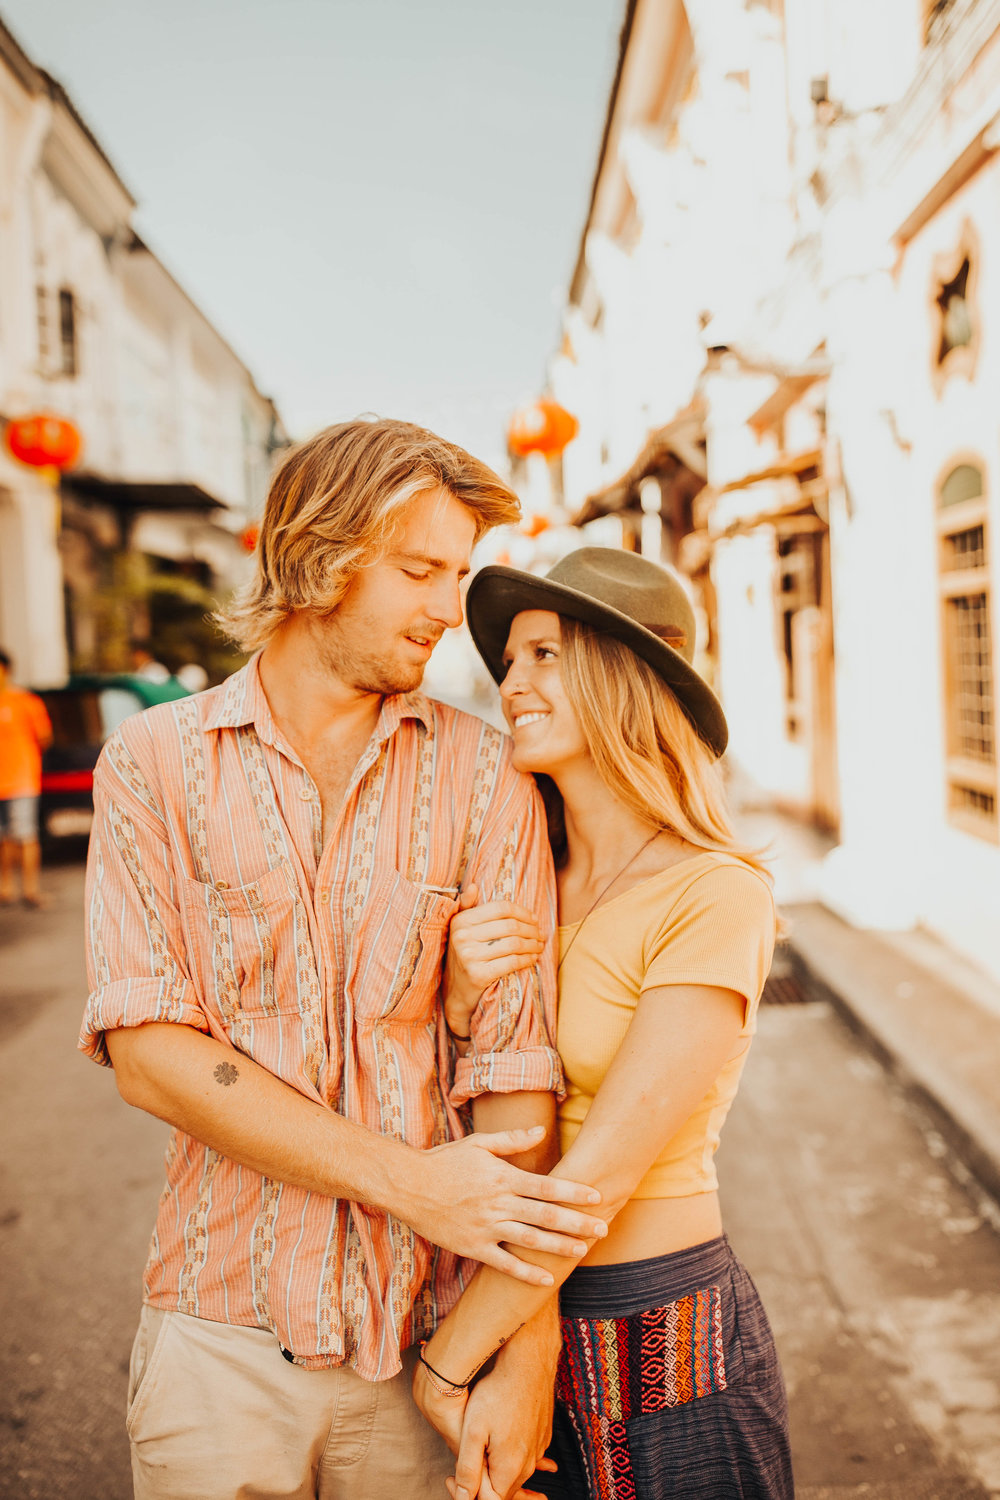 Julie and Will Old Town Phuket Couples Session 16.jpg